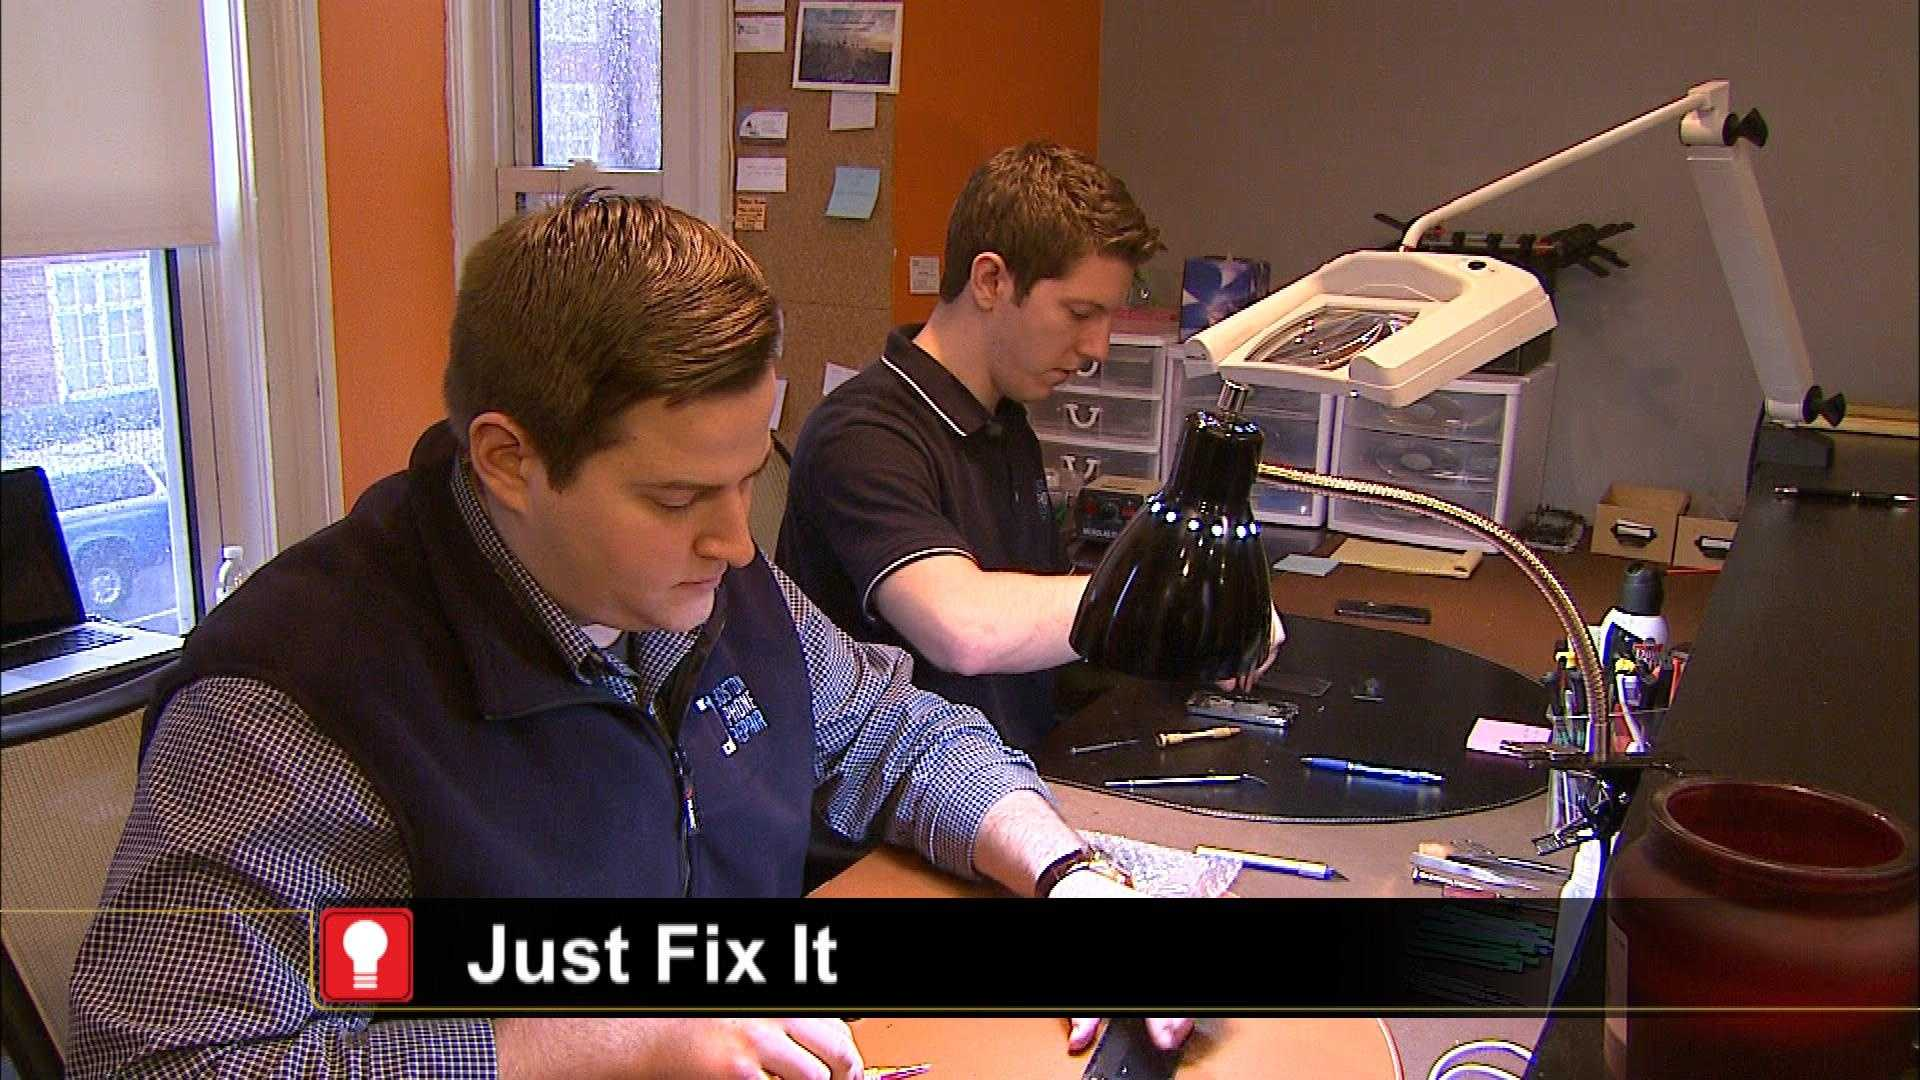 Image: Just Fix It